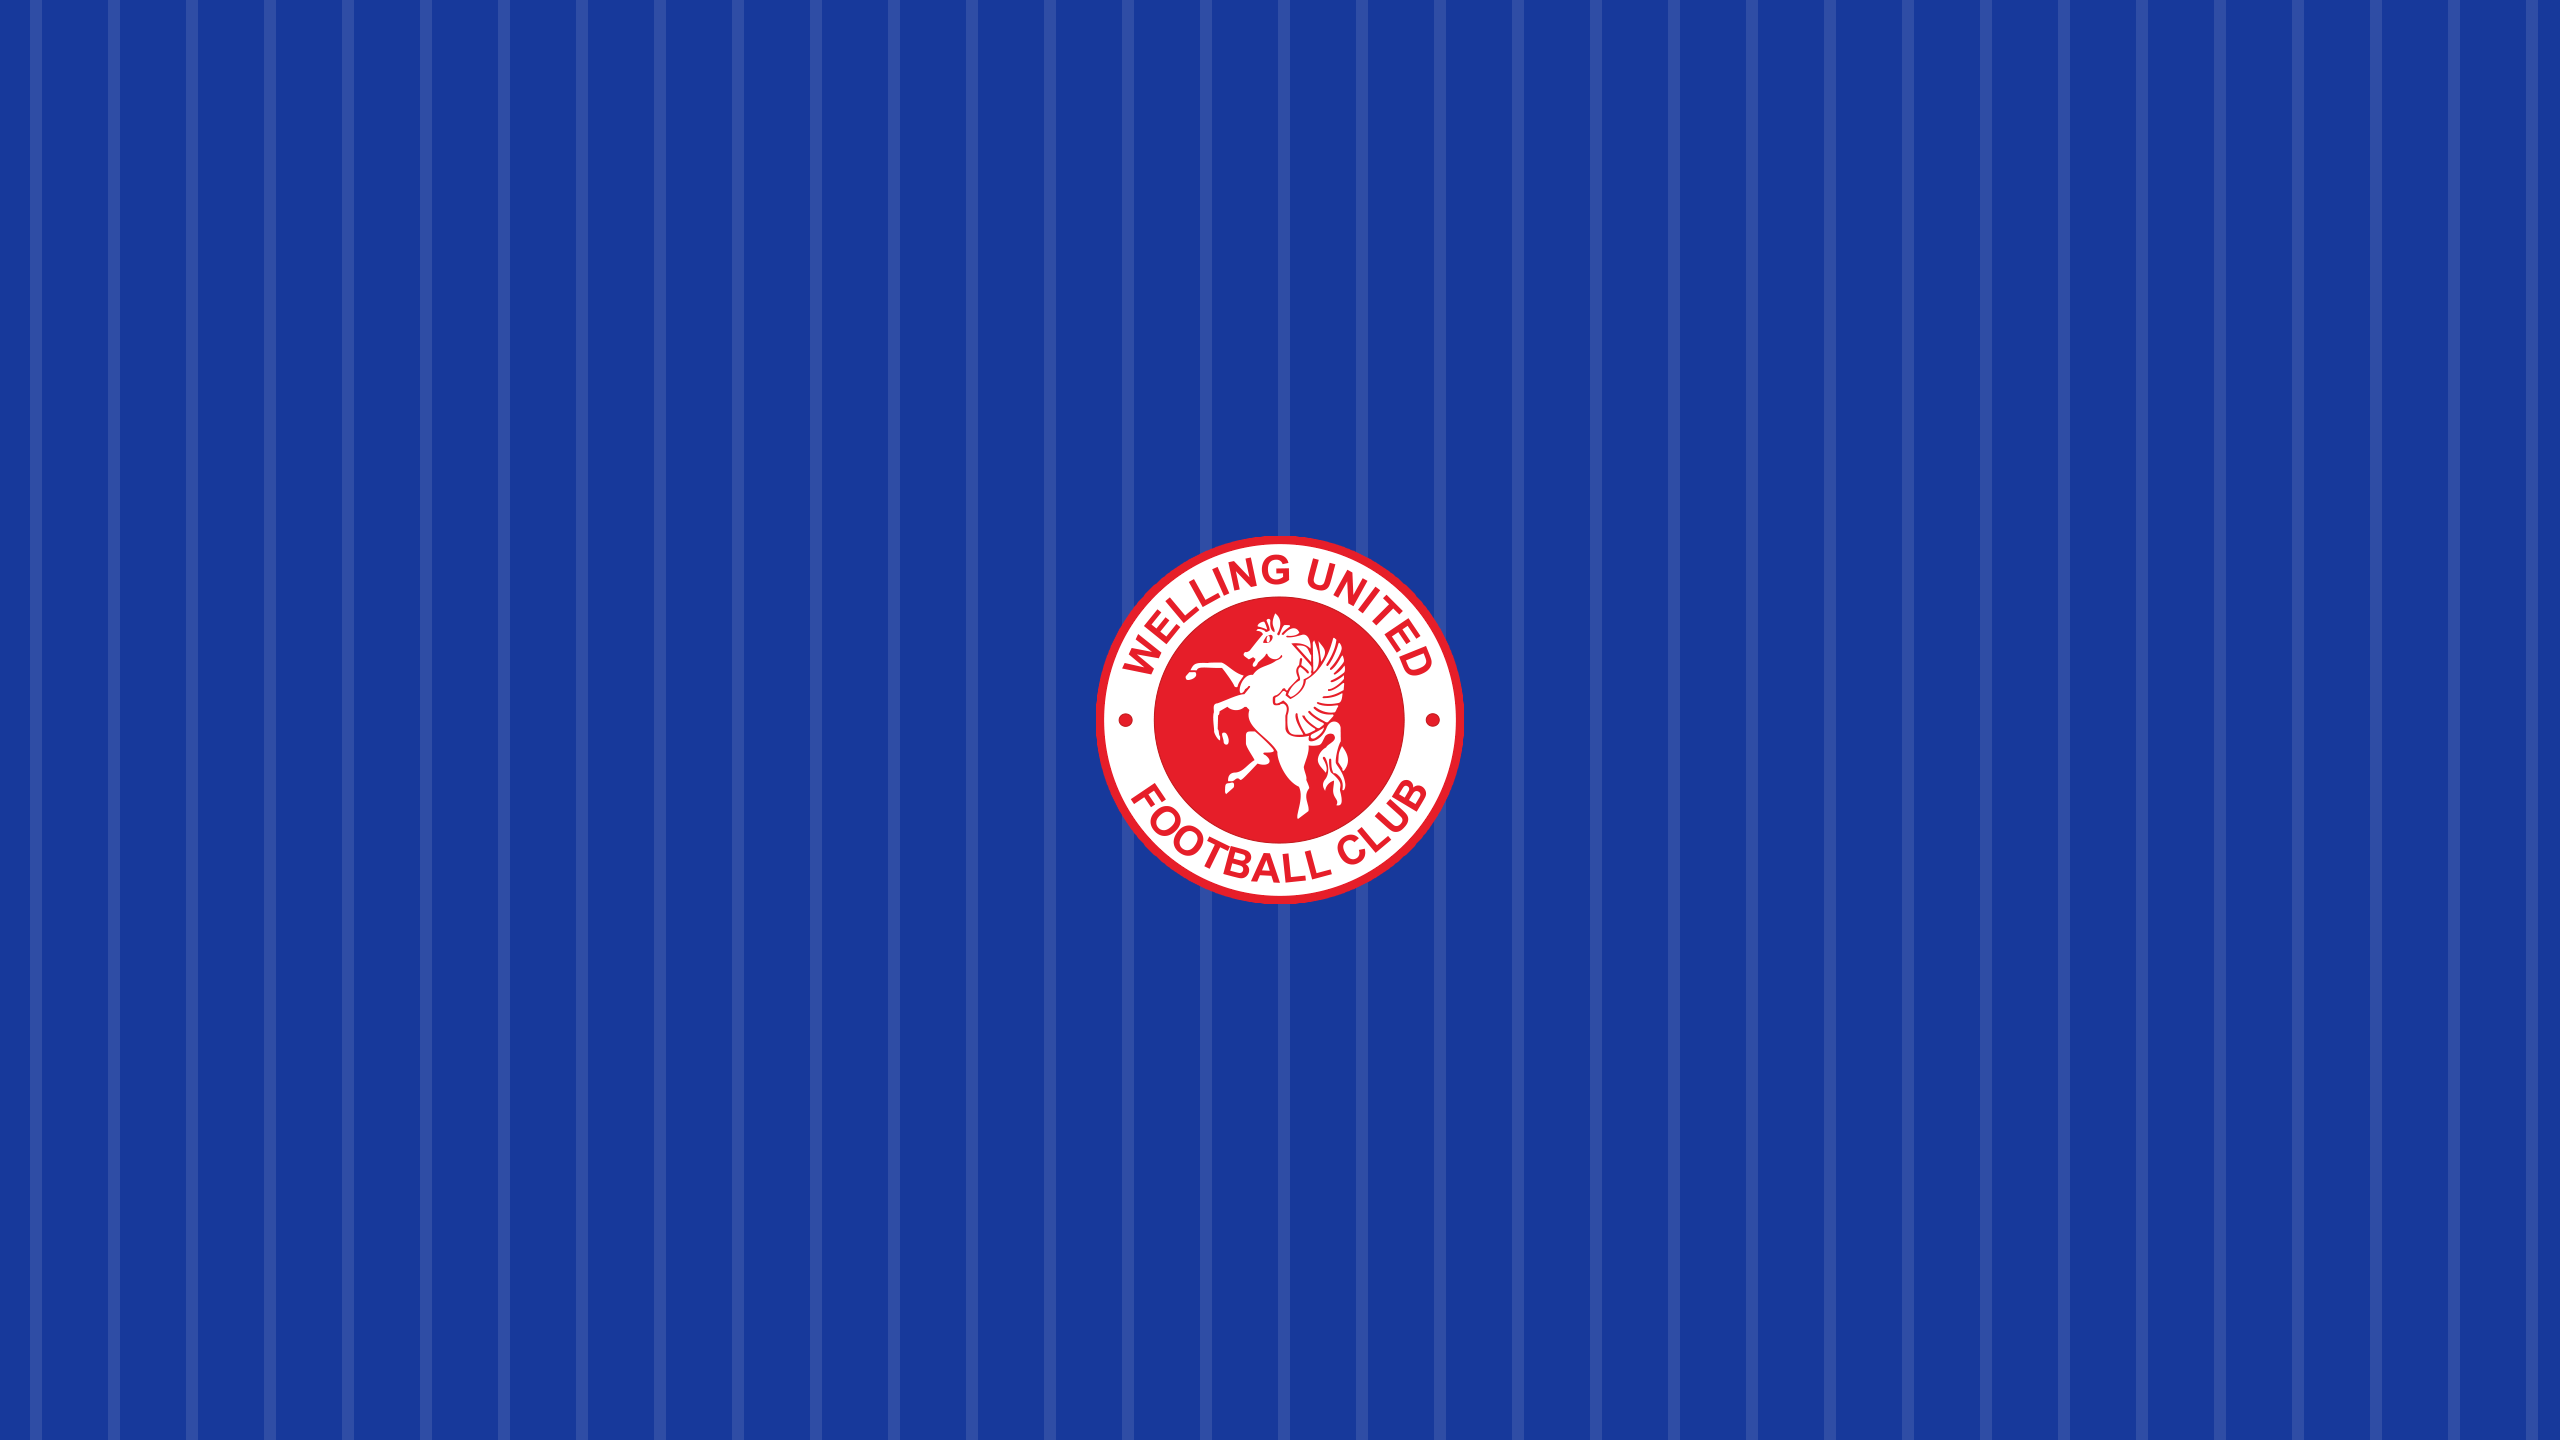 Welling United FC (Third)